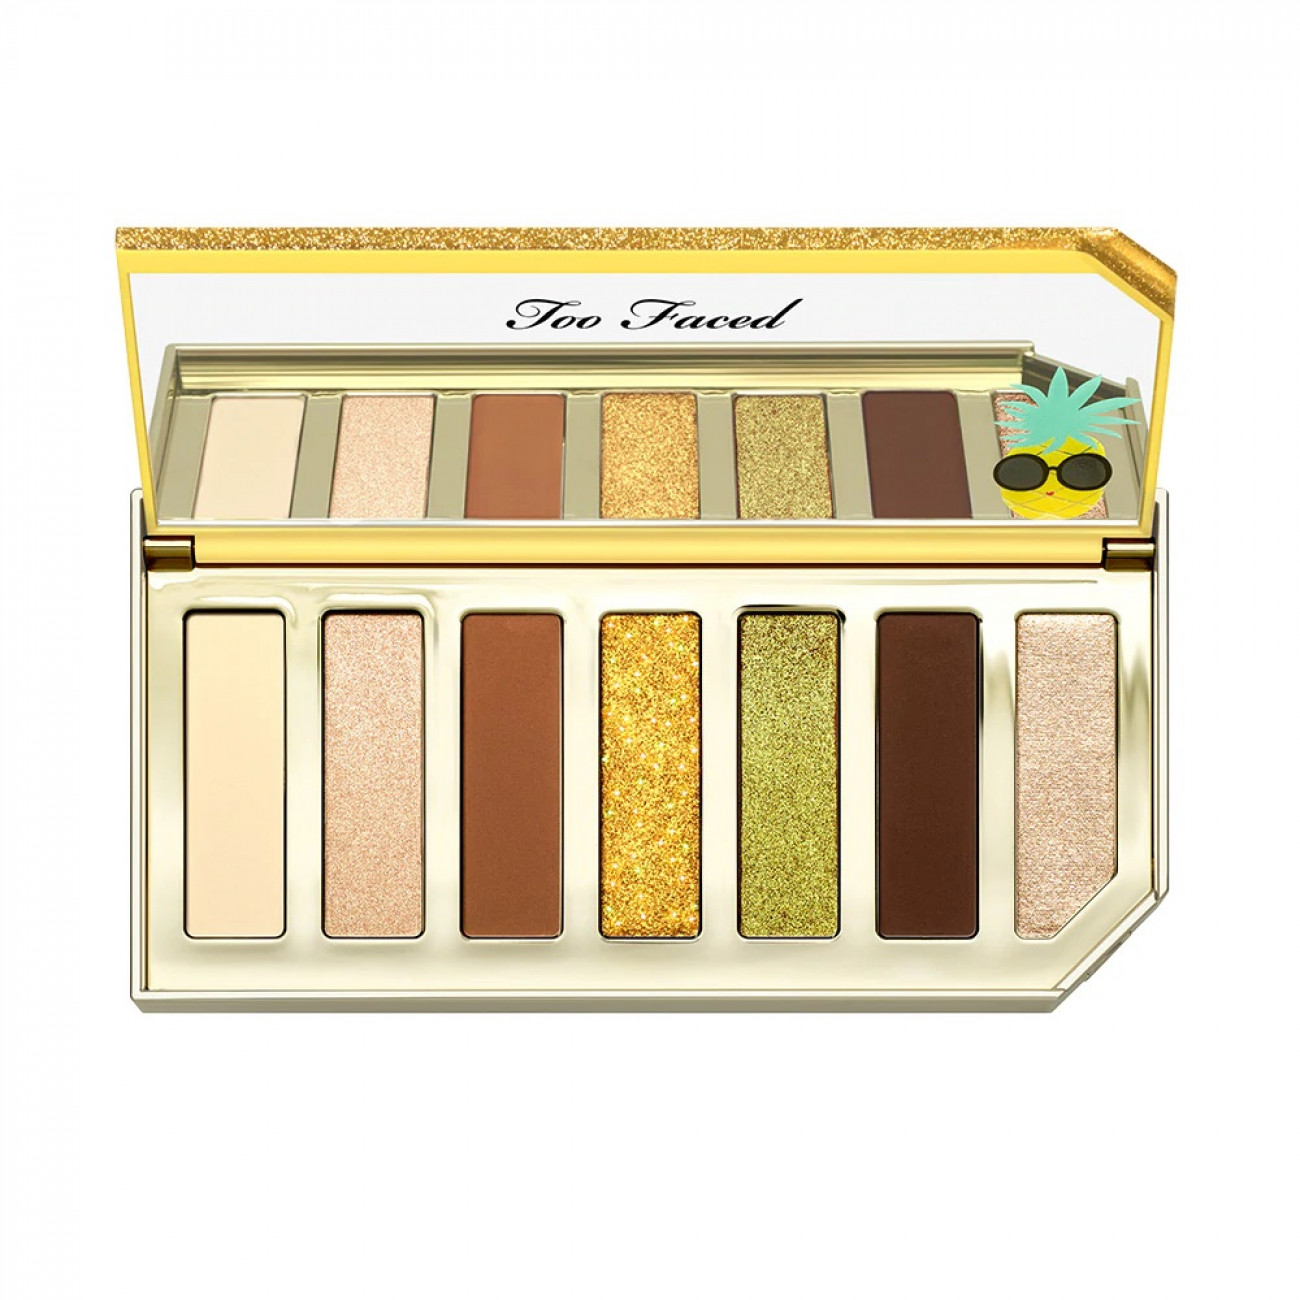 Paleta De Sombras Too Faced Sparkling Pineapple